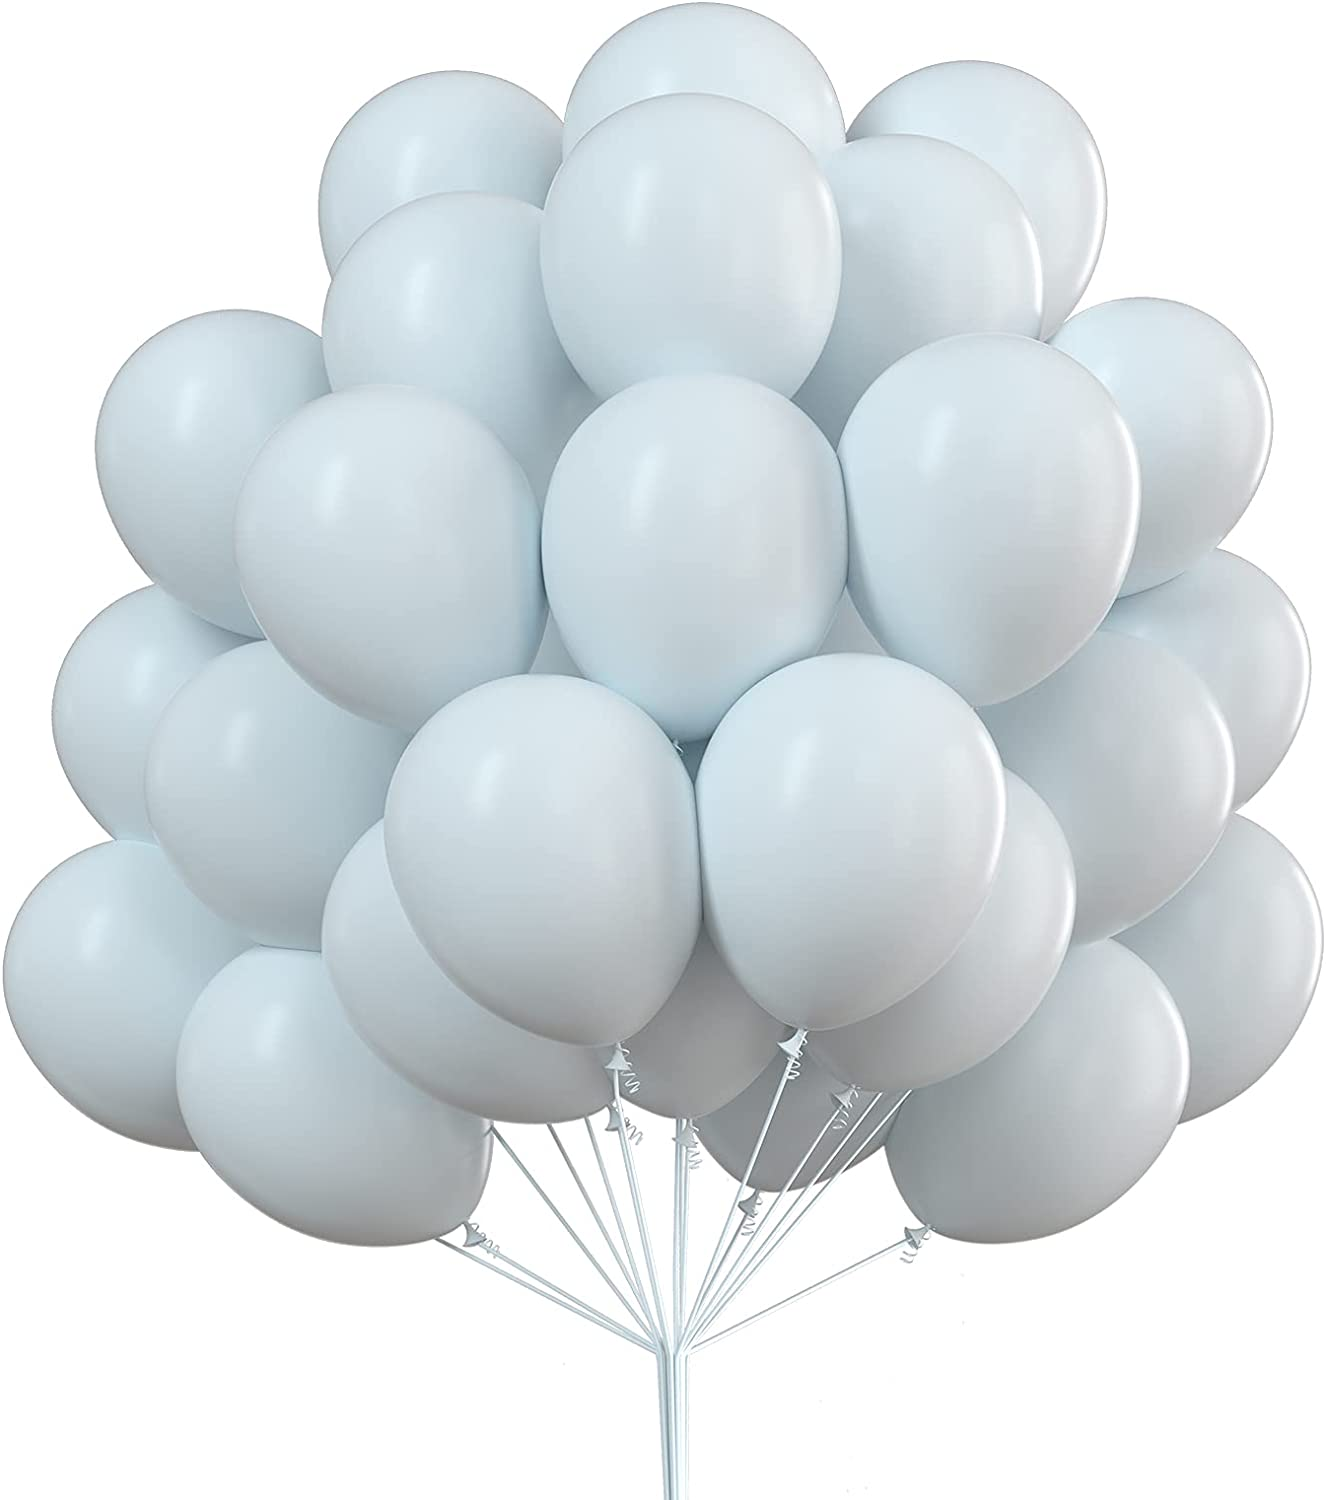 PartyWoo White Balloons 50 pcs Latex Party Kansas City Mall Discount is also underway Ba 12 inch